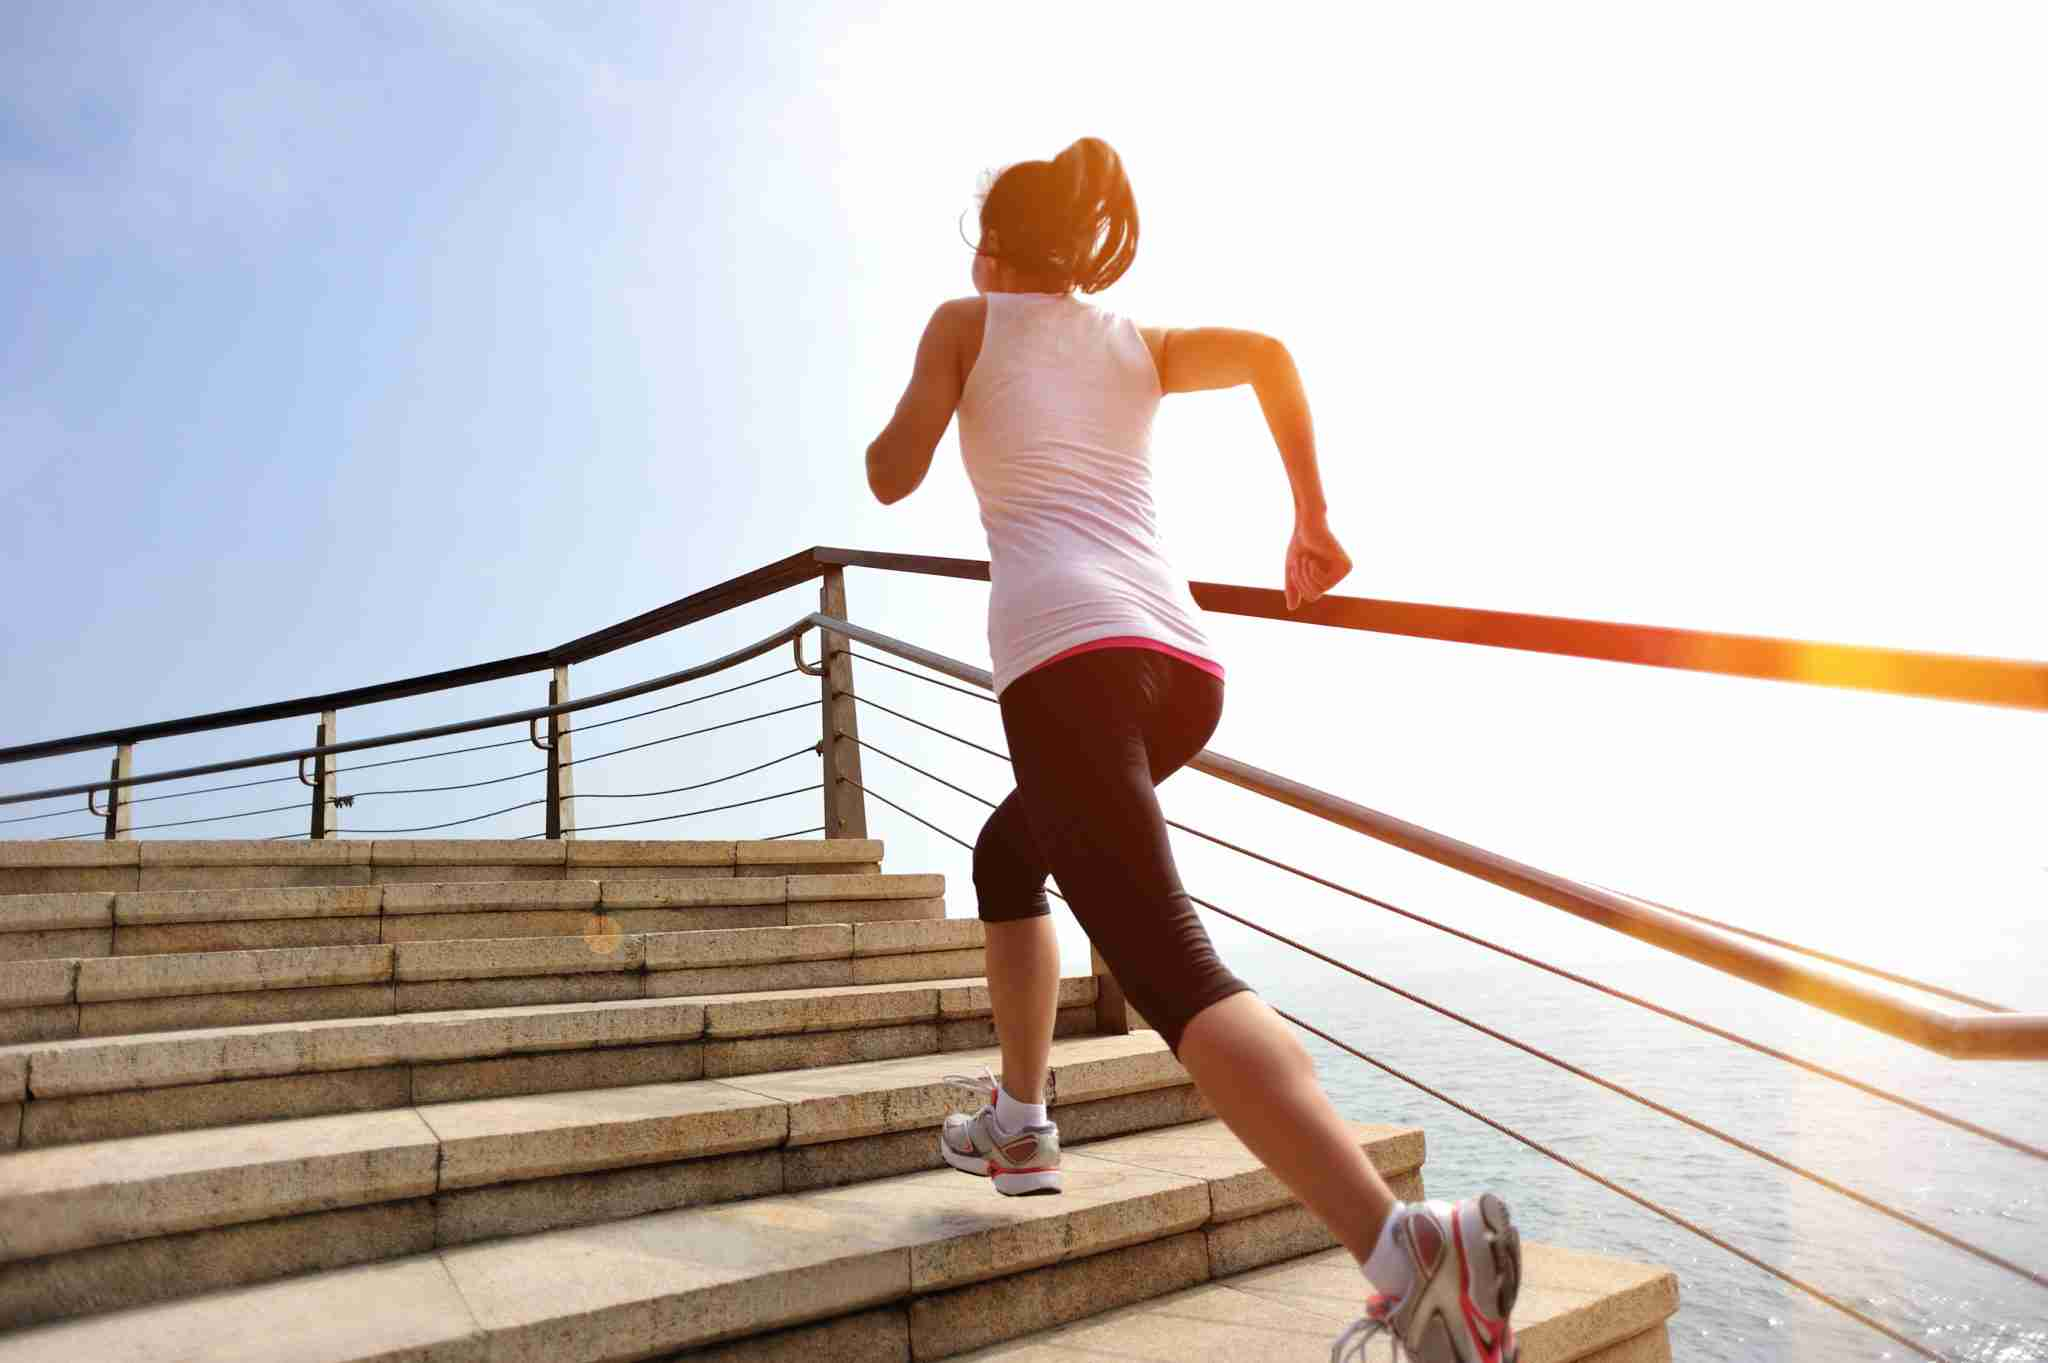 Wandsworth physiotherapy runner